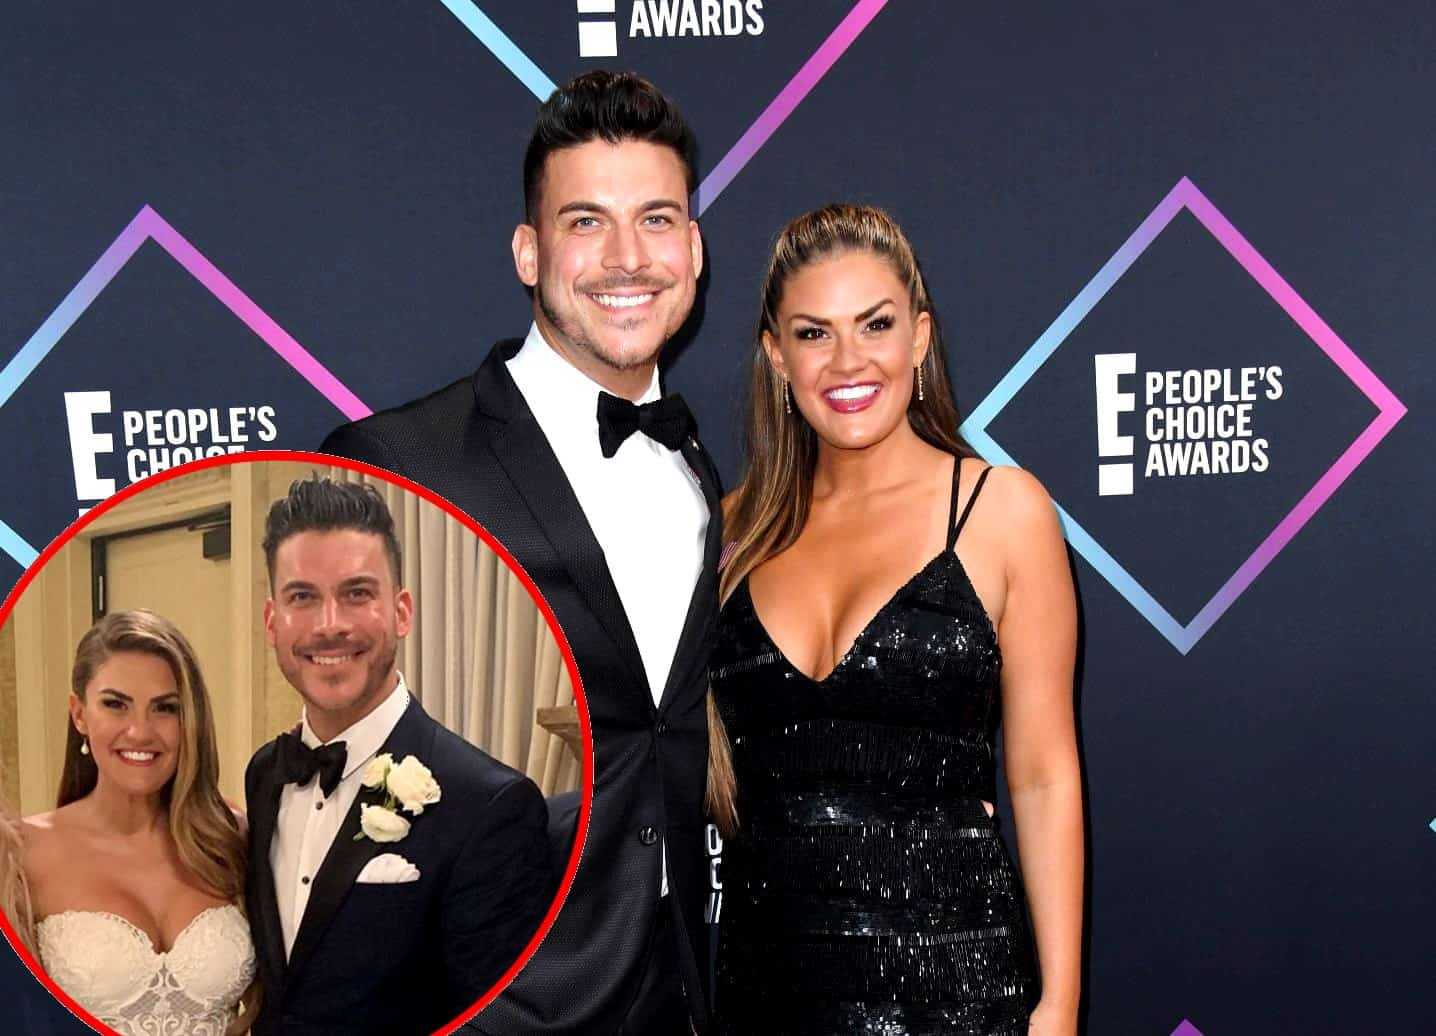 PHOTOS: Vanderpump Rules' Jax Taylor and Brittany Cartwright Get Married! See Their Wedding Pics and Find Out Who Attended, Plus Their Unique Wedding Cake